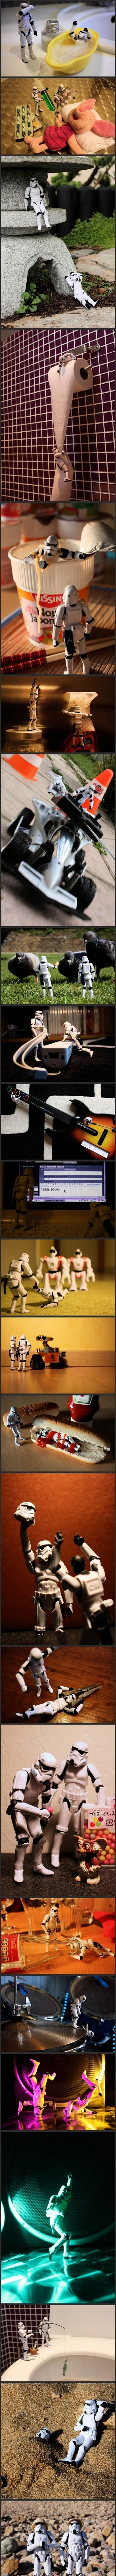 Storm trooper activities.